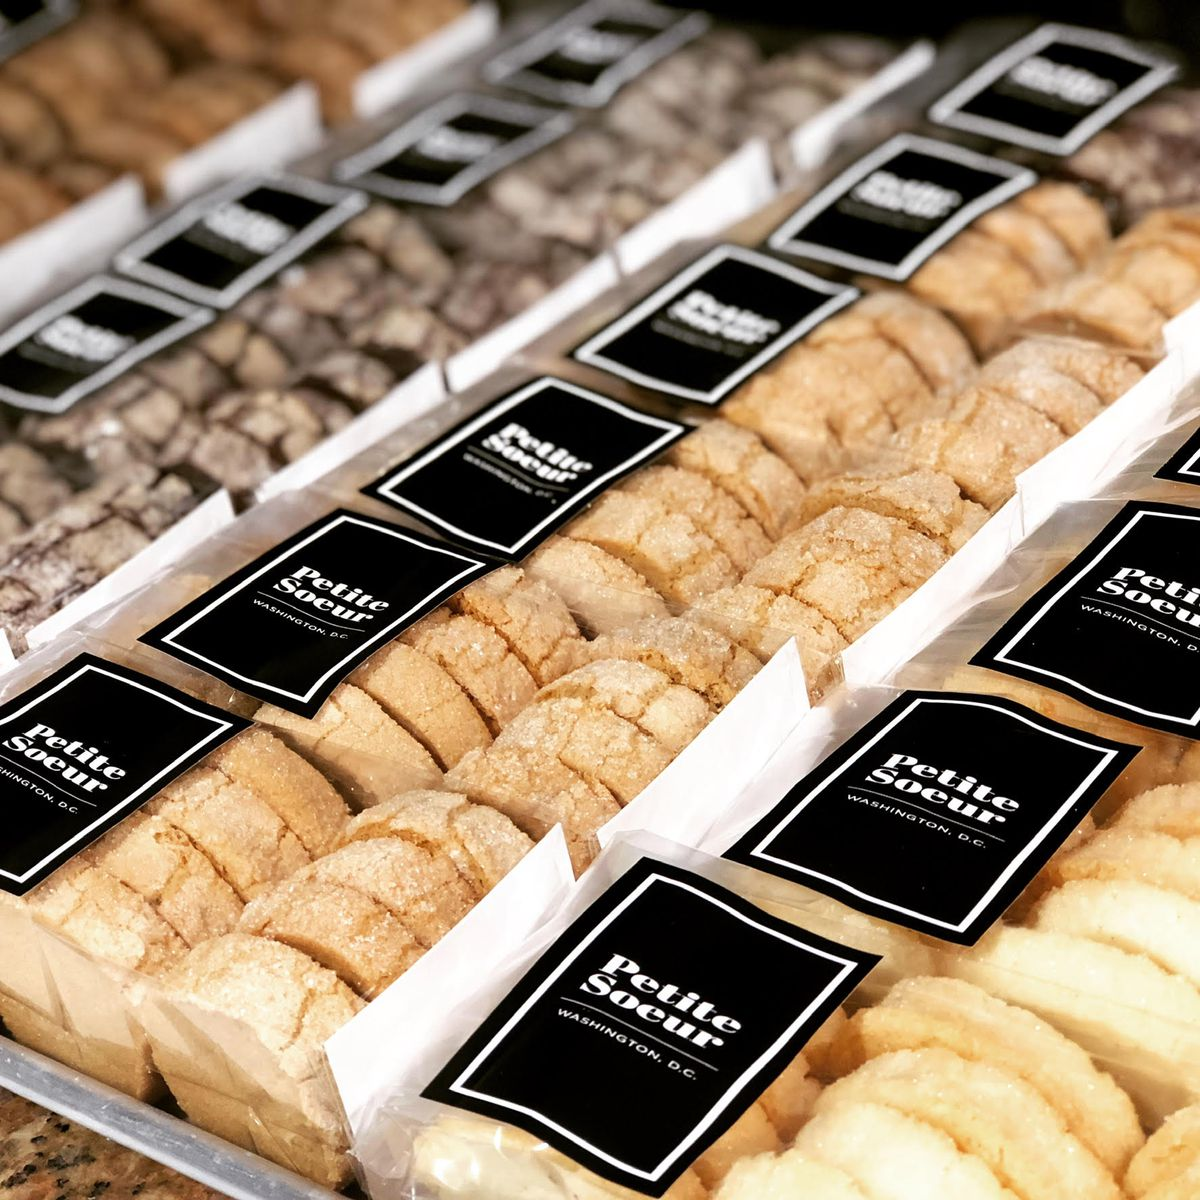 Sleeves of packaged French butter cookies